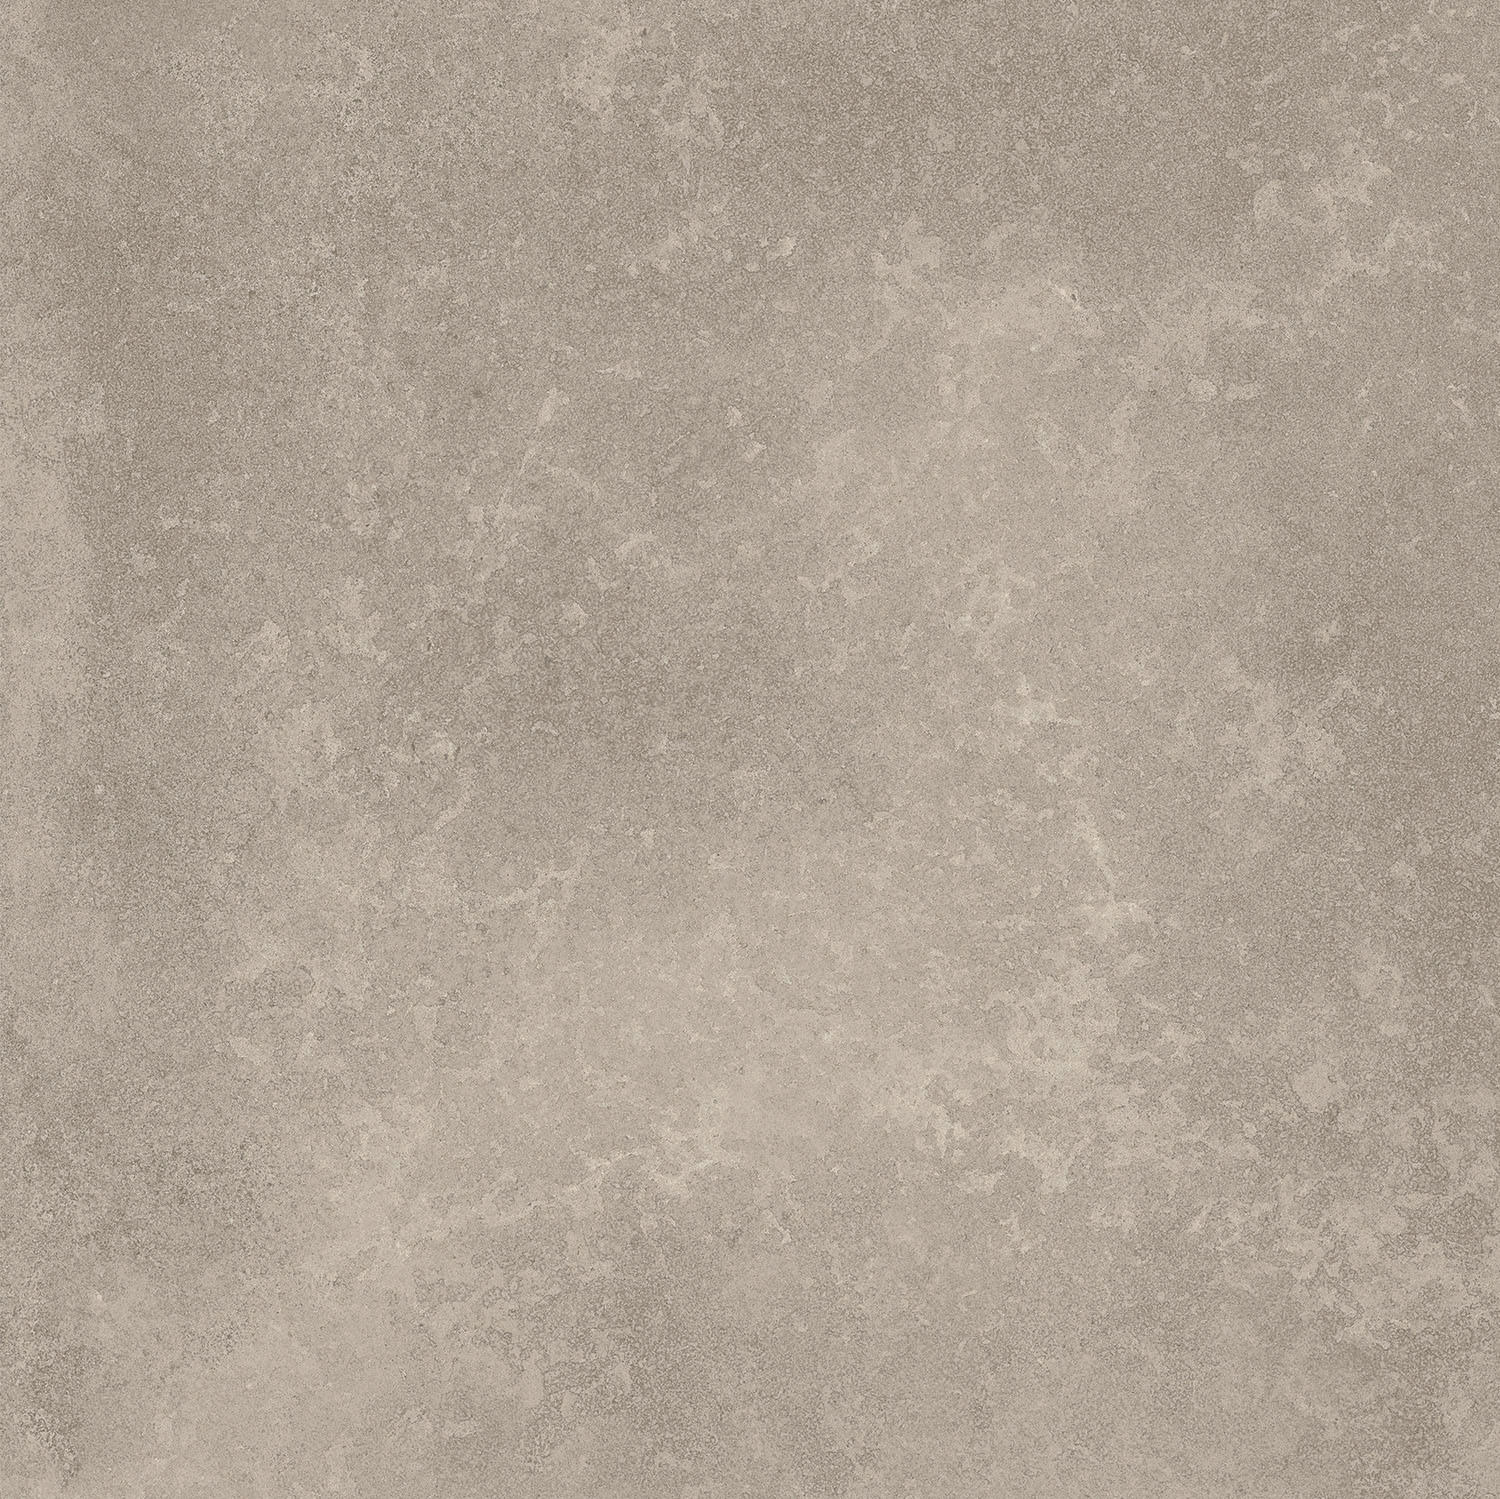 Level Set Textured Stones A00301 Polished Cement Marble